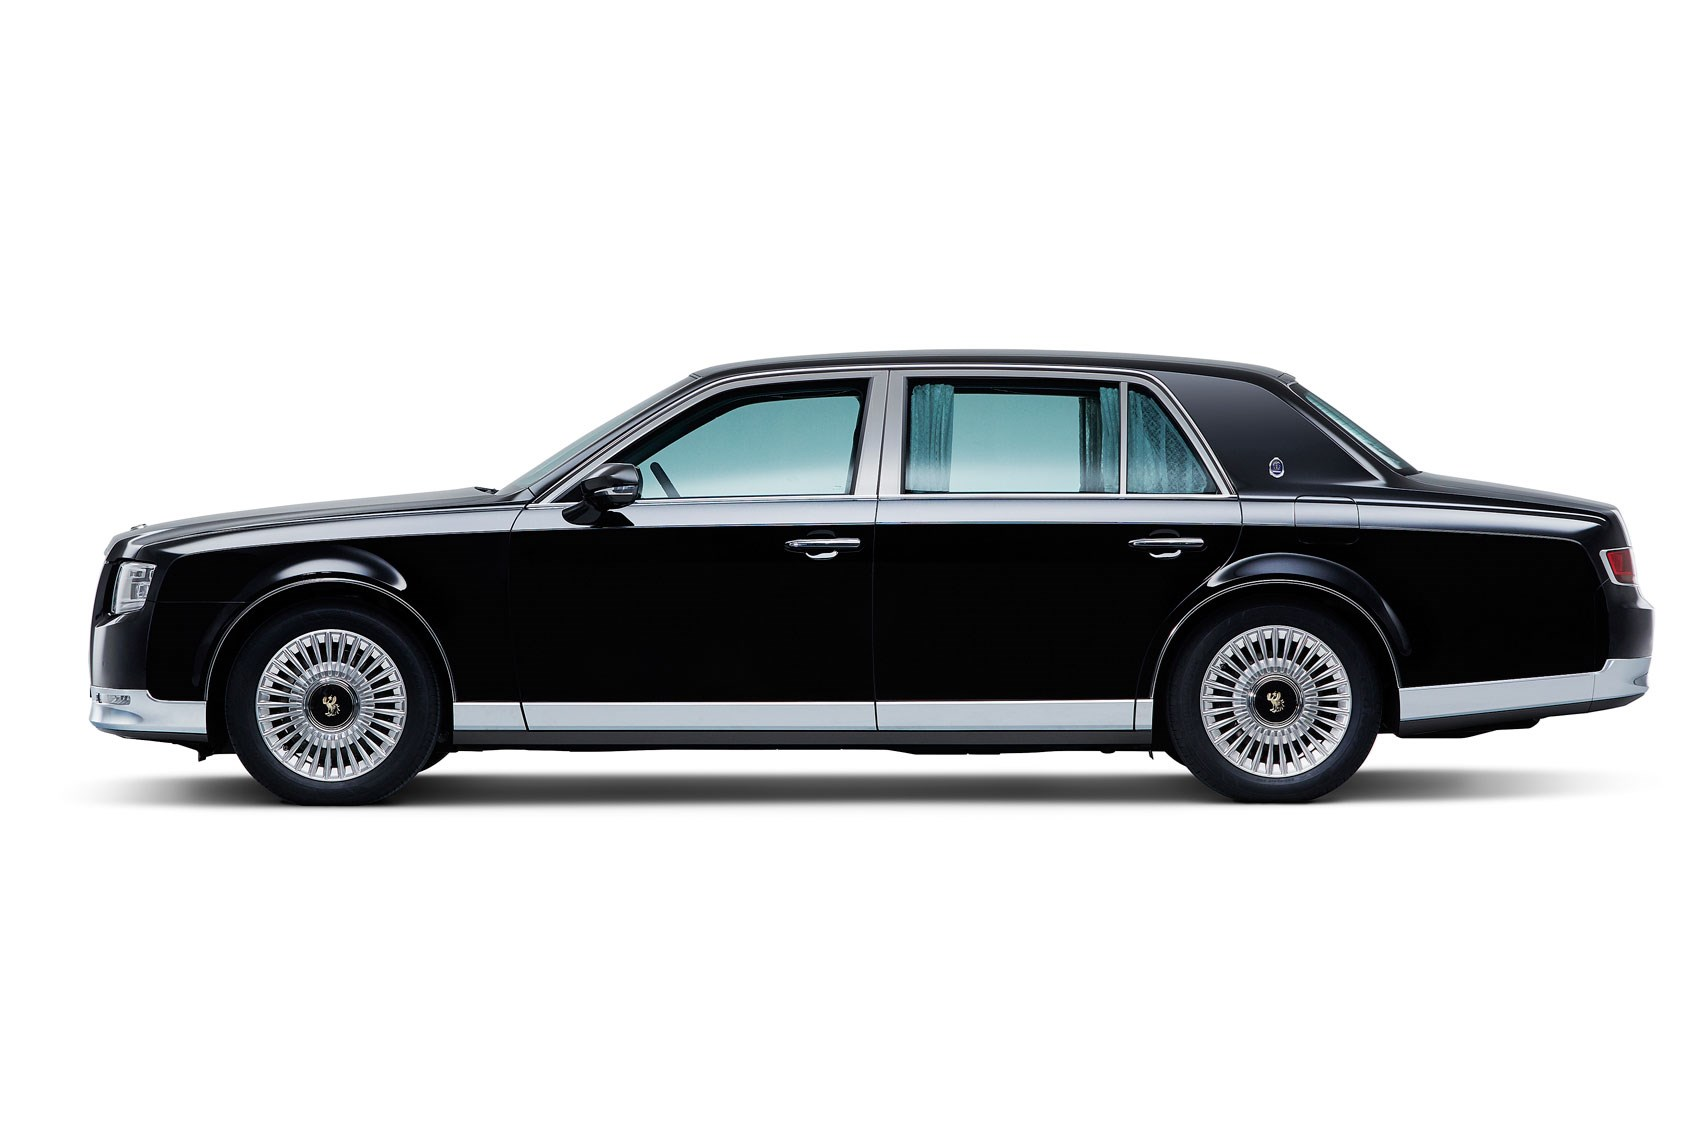 new toyota century limo brings old school class to tokyo